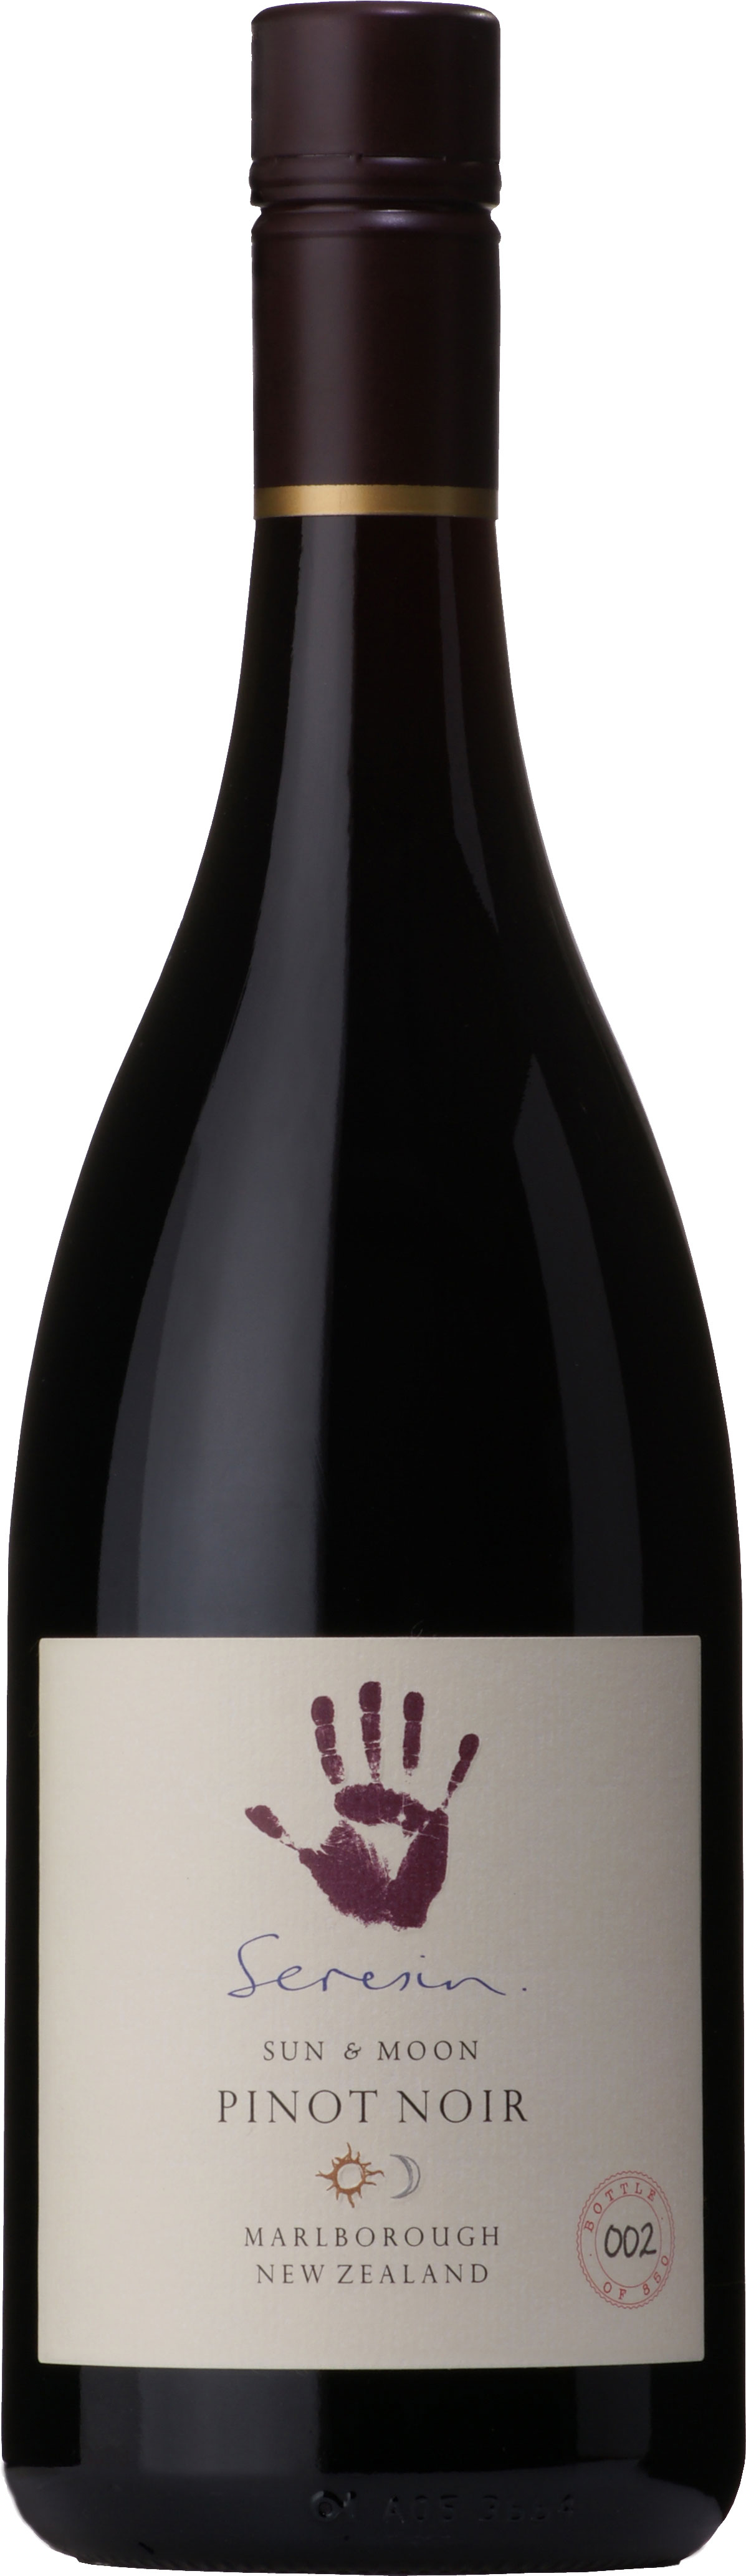 Seresin - Sun and Moon Pinot Noir 2014 6x 75cl Bottles